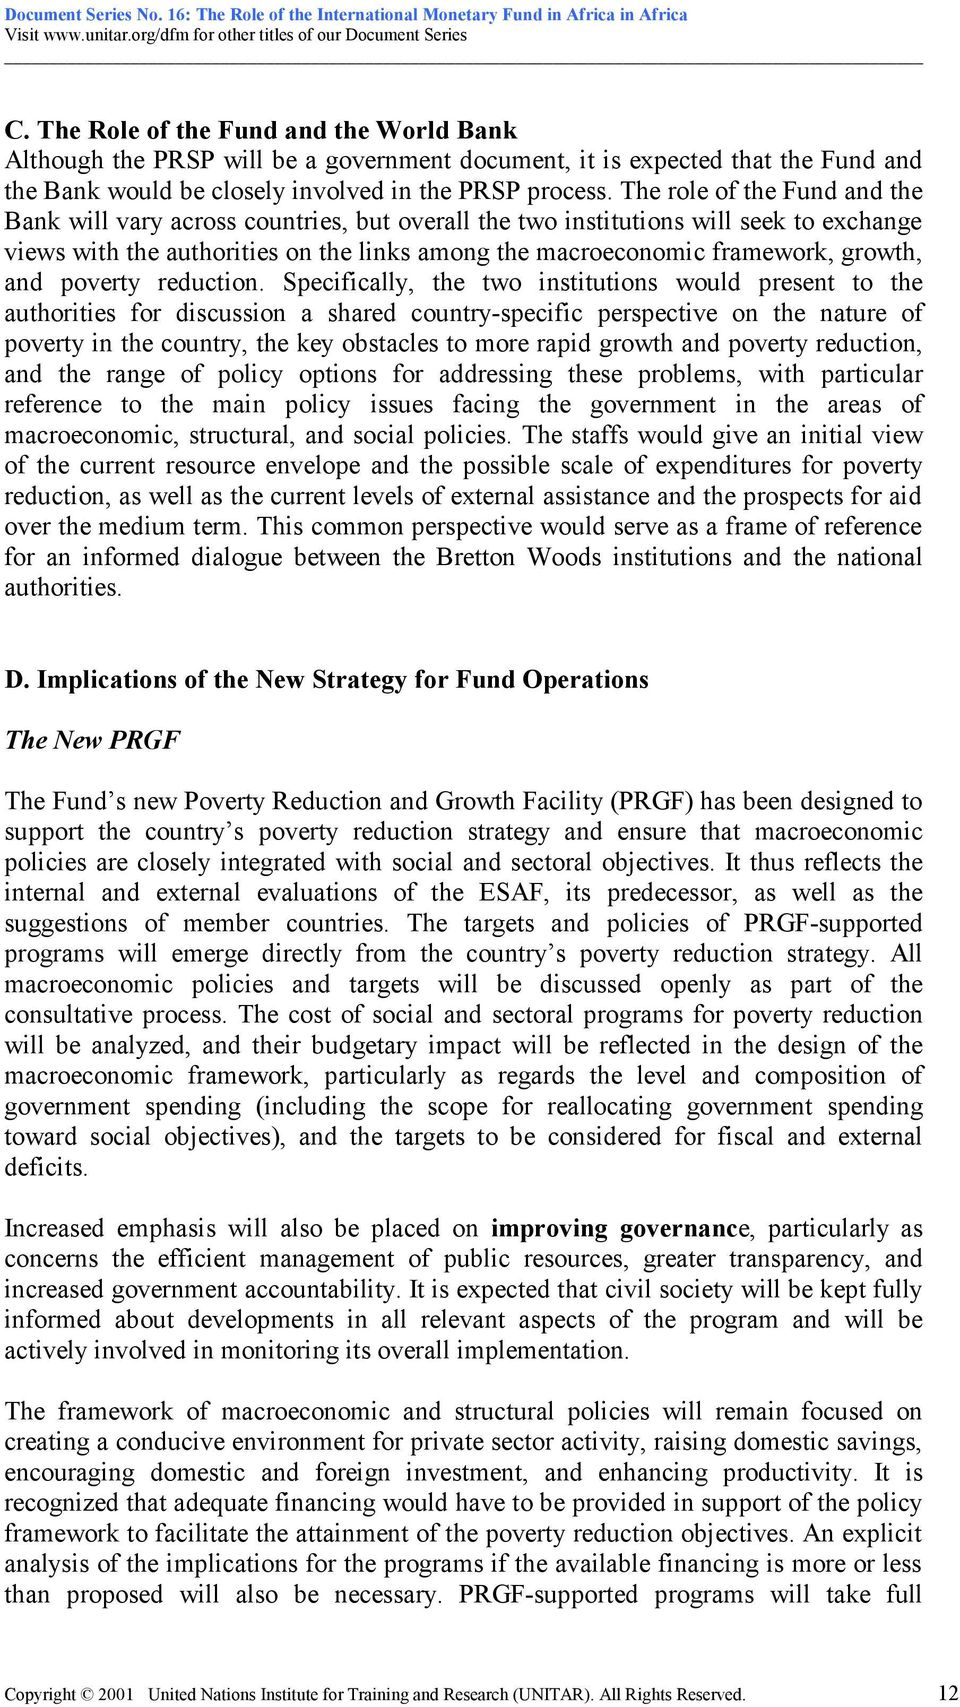 the vision and strategic framework of the international monetary fund The 2013/17 national treasury strategic plan (update)  vision and mission  statement - 4 | updated situational analysis - 5, service delivery environment - 5 ,  including the group of 20, the international monetary fund and the world  bank.